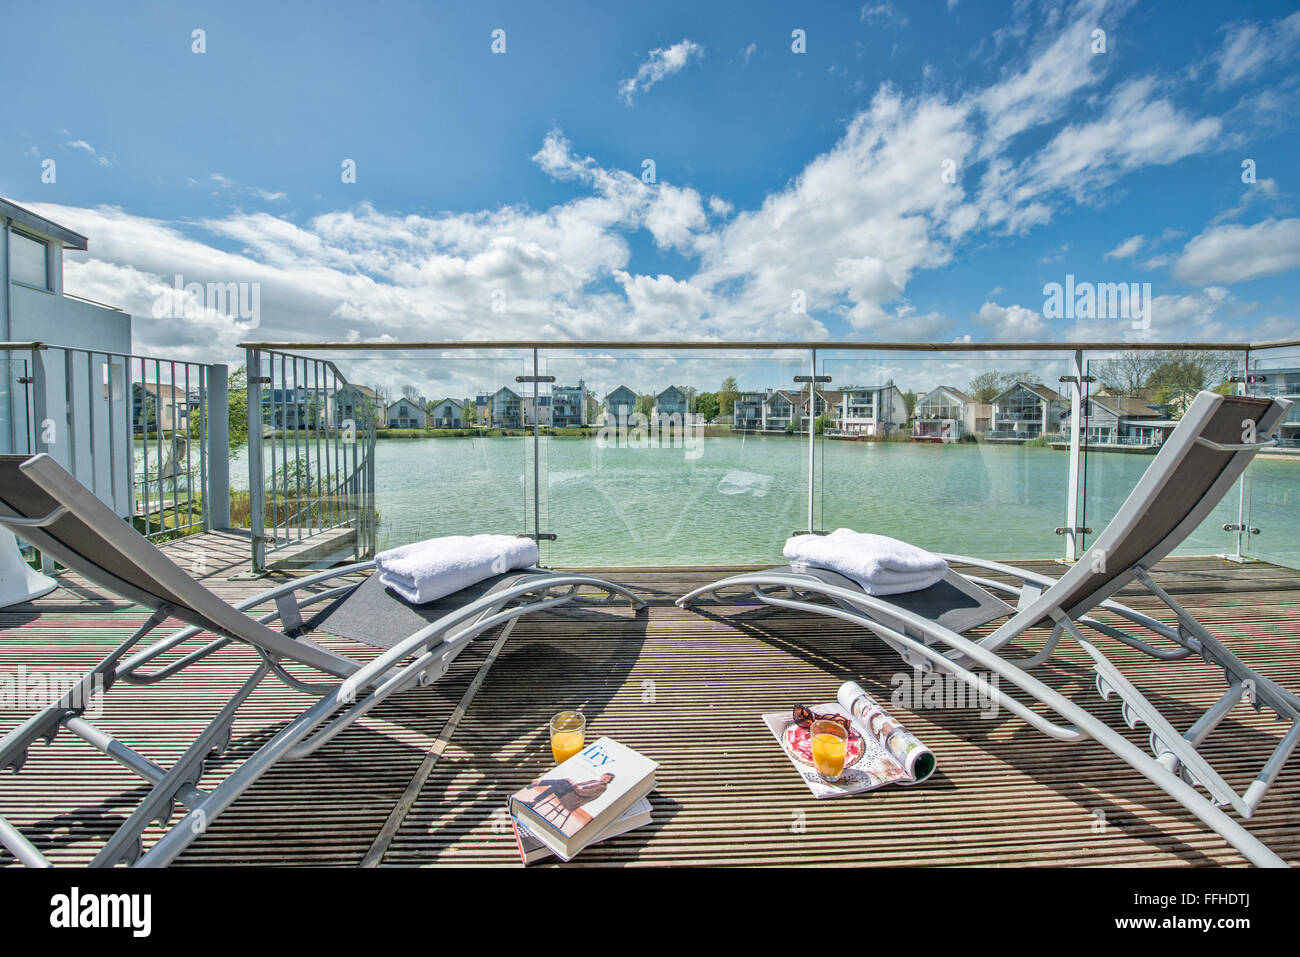 2 deck chairs on decking at a holiday residence in the Cotswolds, UK with a waterside view awaiting occupants - Stock Image